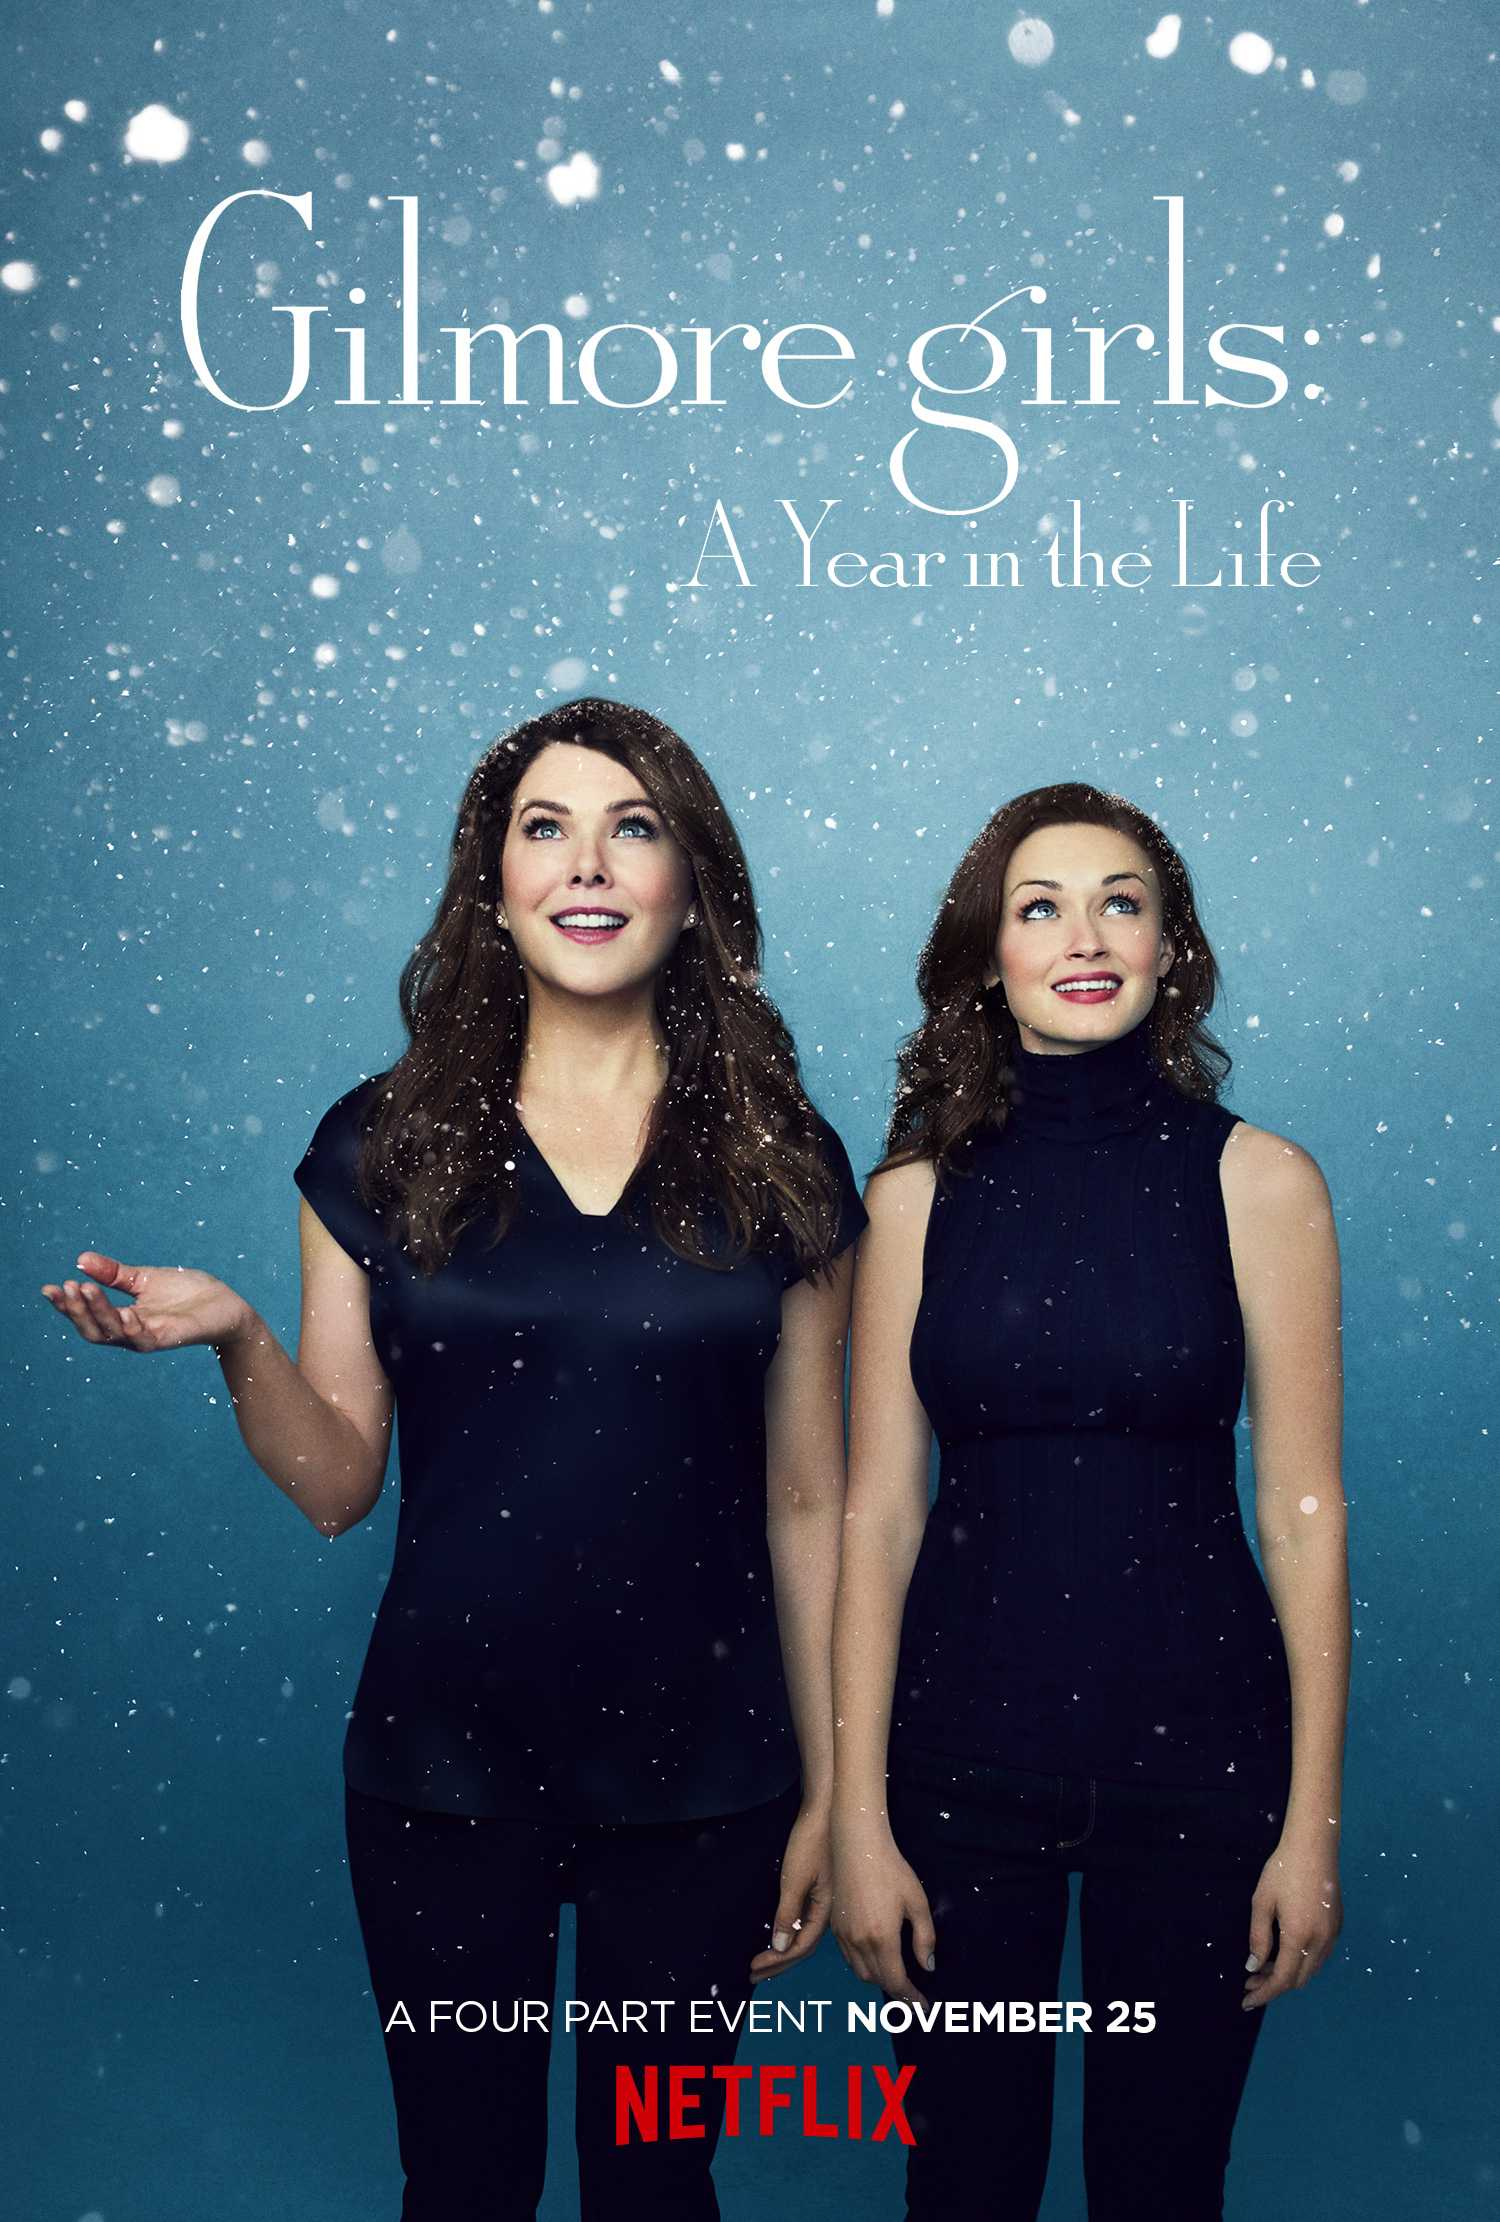 Gilmore Girls: A Year In The Life Posters Show Us The Seasons Of Stars Hollow | Stars Hollow